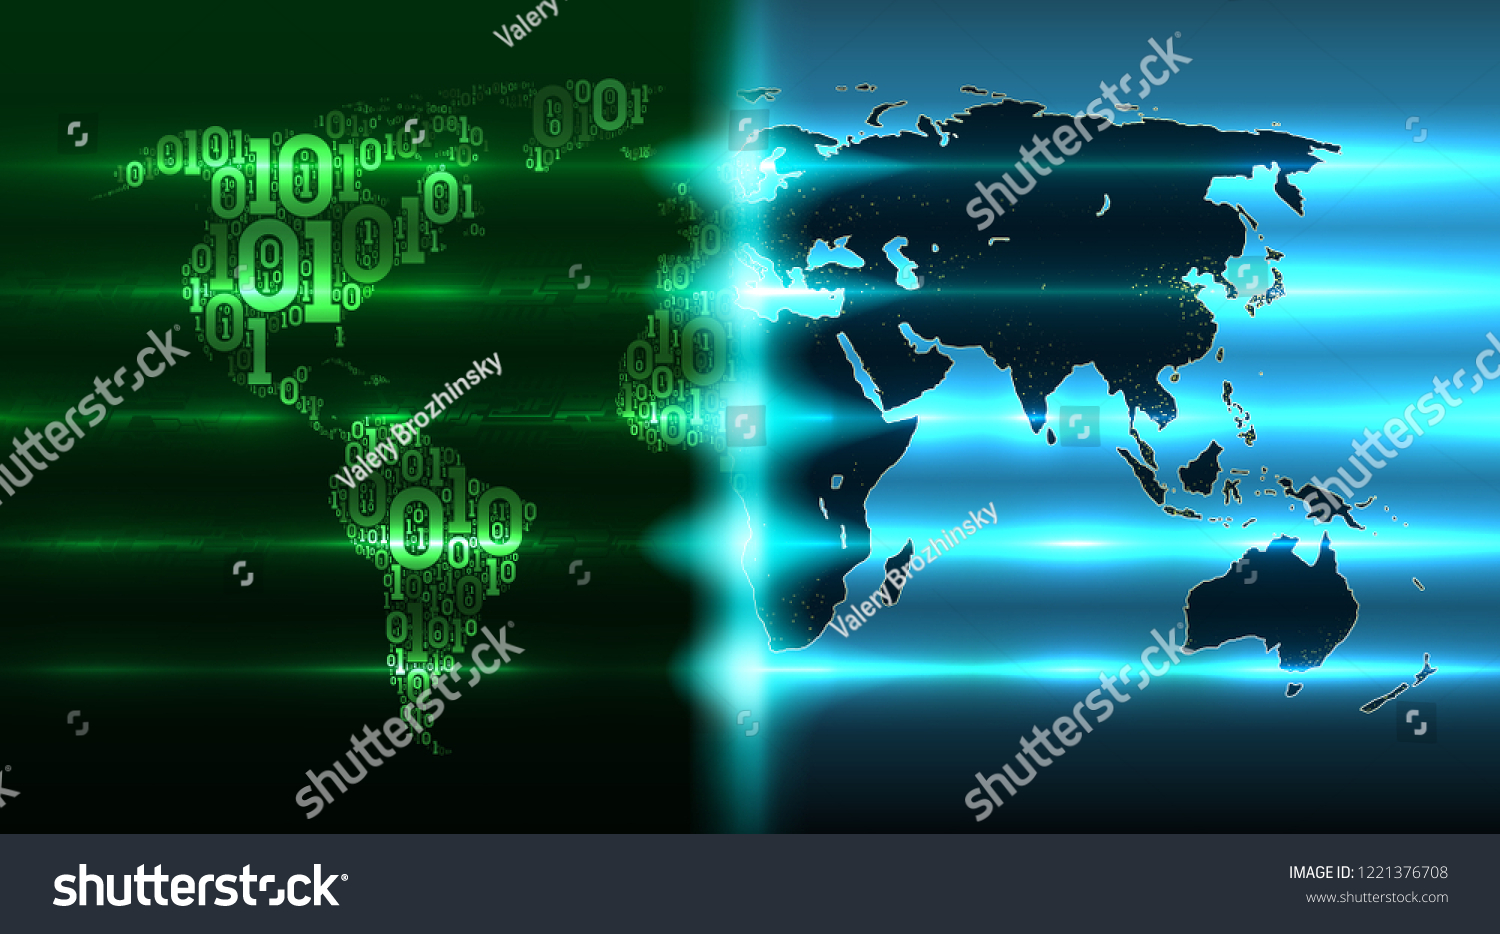 Digital Revolution On World Map Stock Vector Royalty Free Electronic Circuit Design Services Earth With Continents From A Binary Code